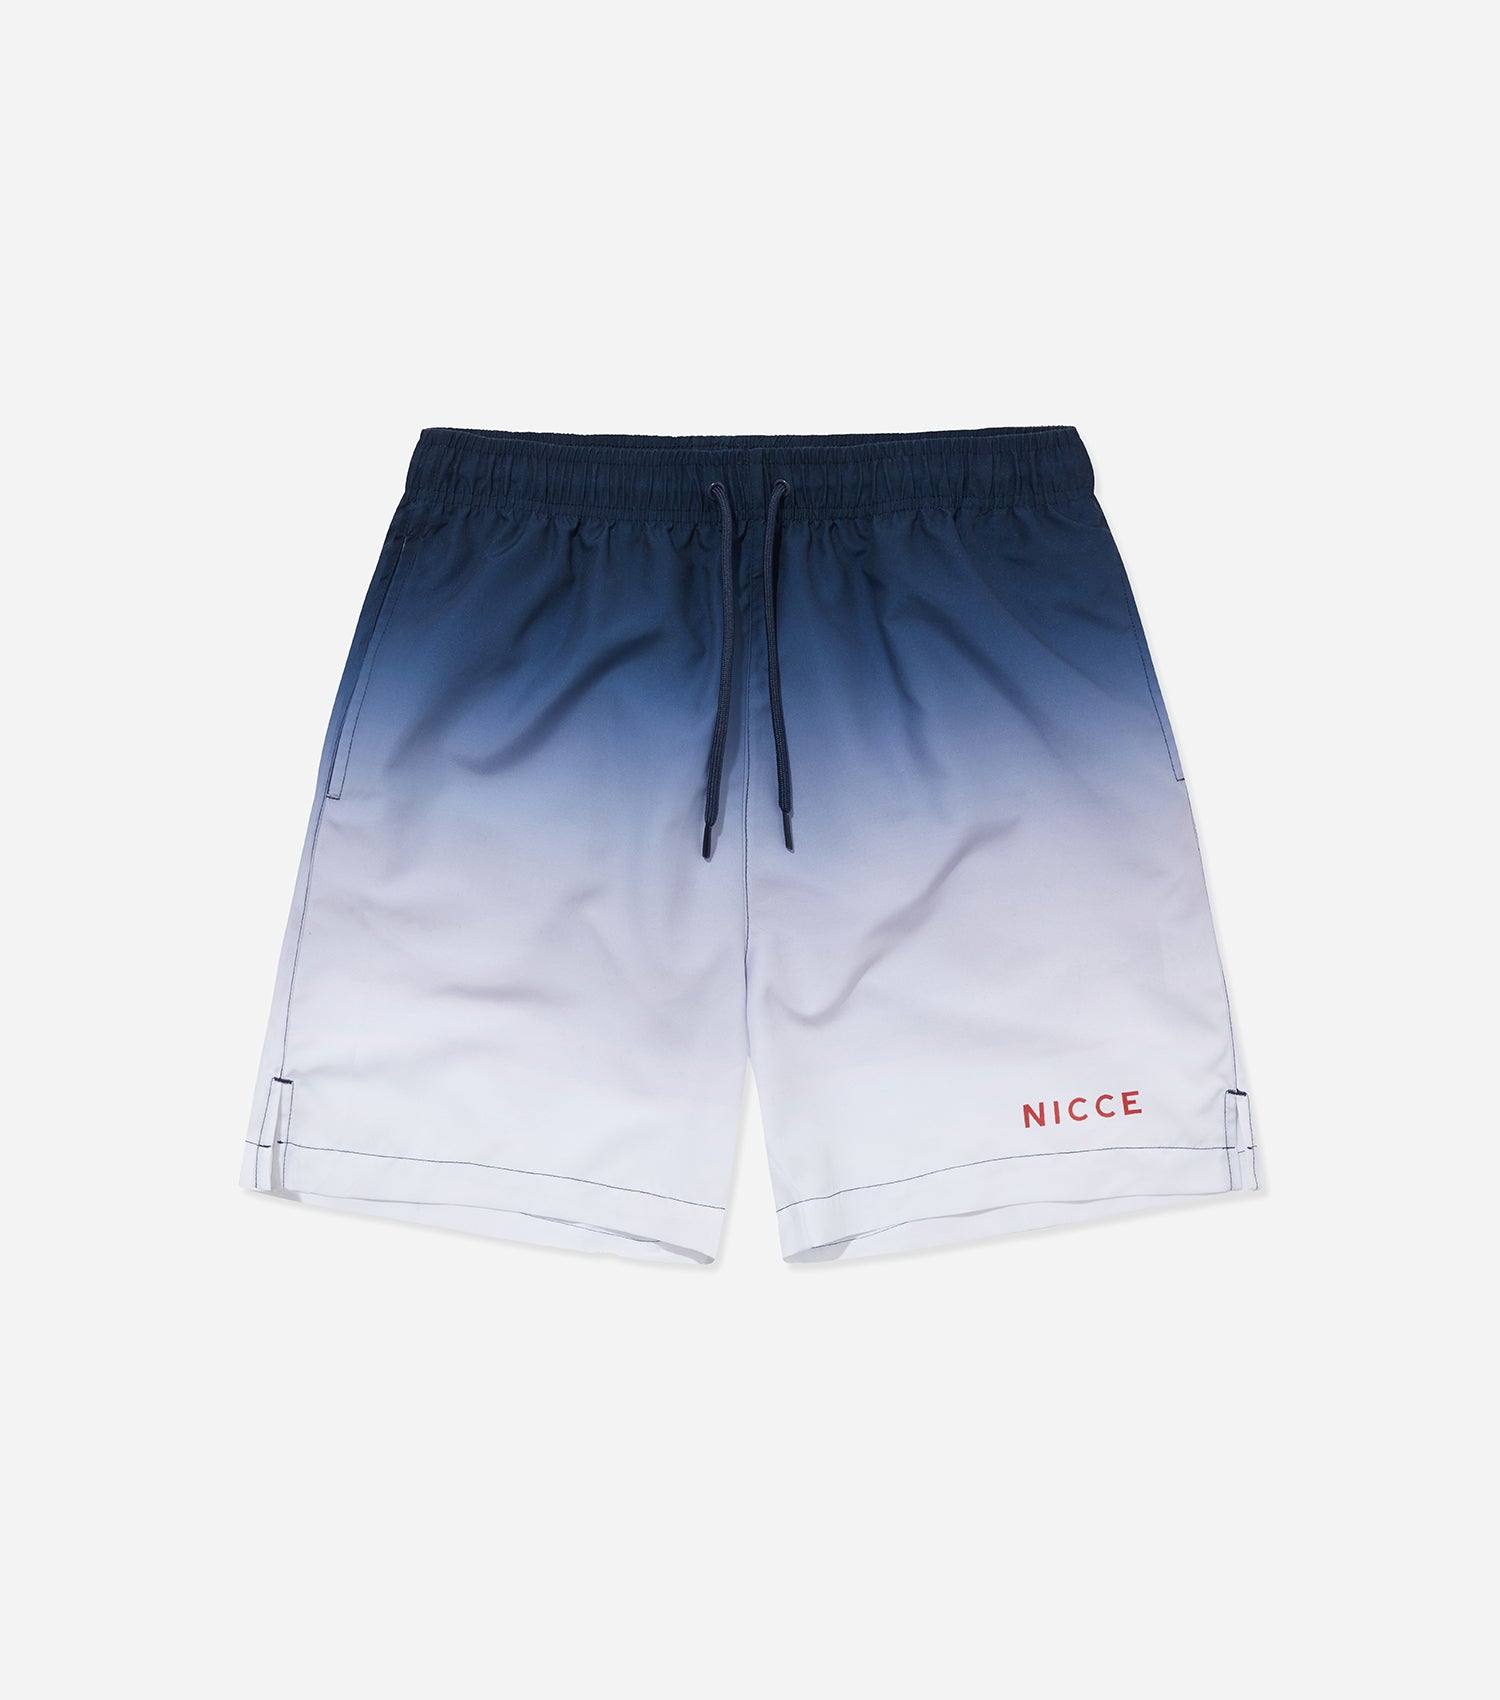 Nicce Mens Ombre Swim Shorts | Deep Navy Ombre, Swimwear